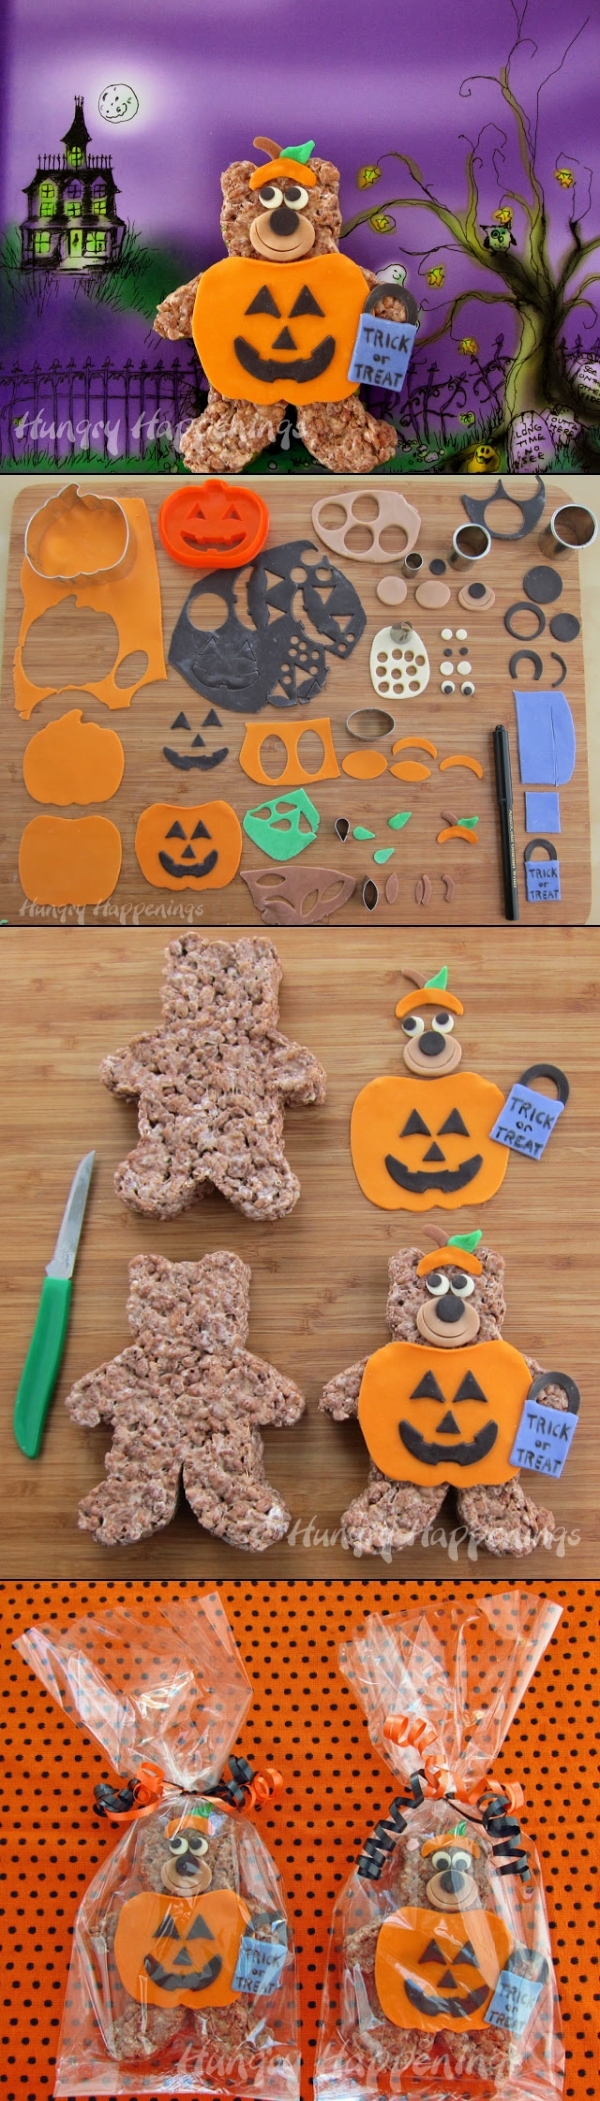 Cocoa Krispies Trick or Treat Bears in pumpkin costumes for Halloween - created via http://pinthemall.net